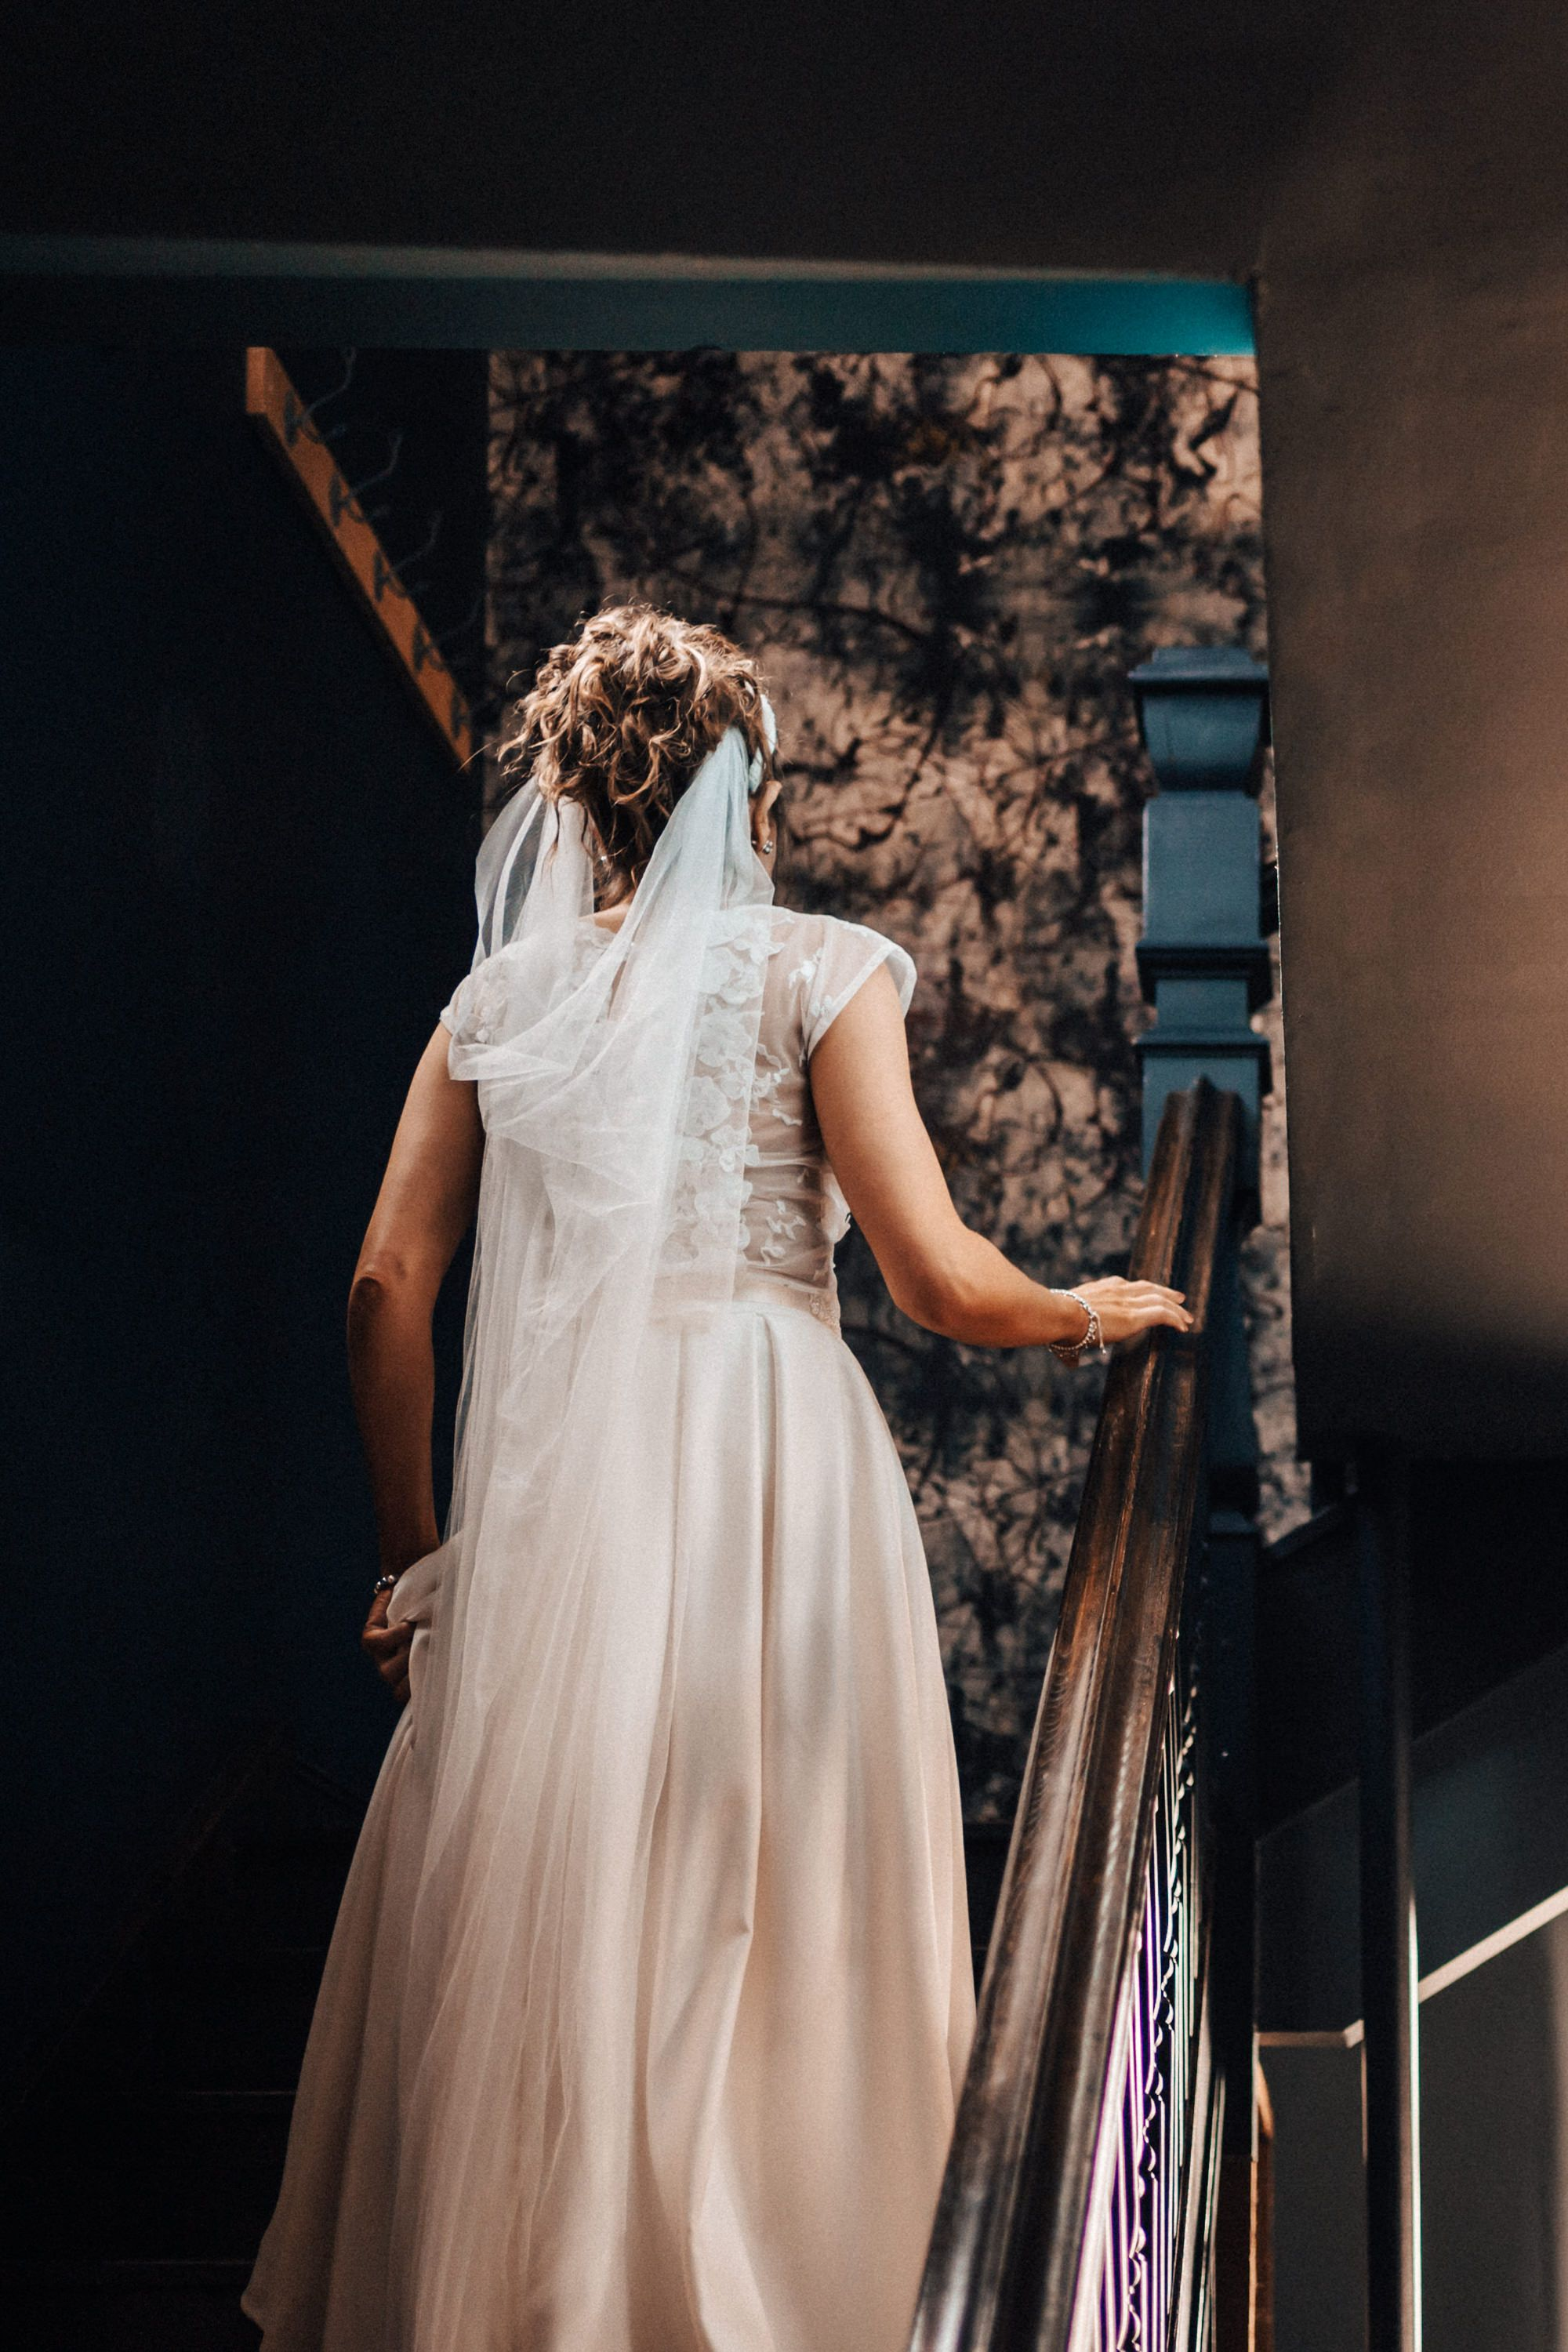 Beautiful photograph the bride's dress as she walked up the stairs taken at the Tavern cheltenham